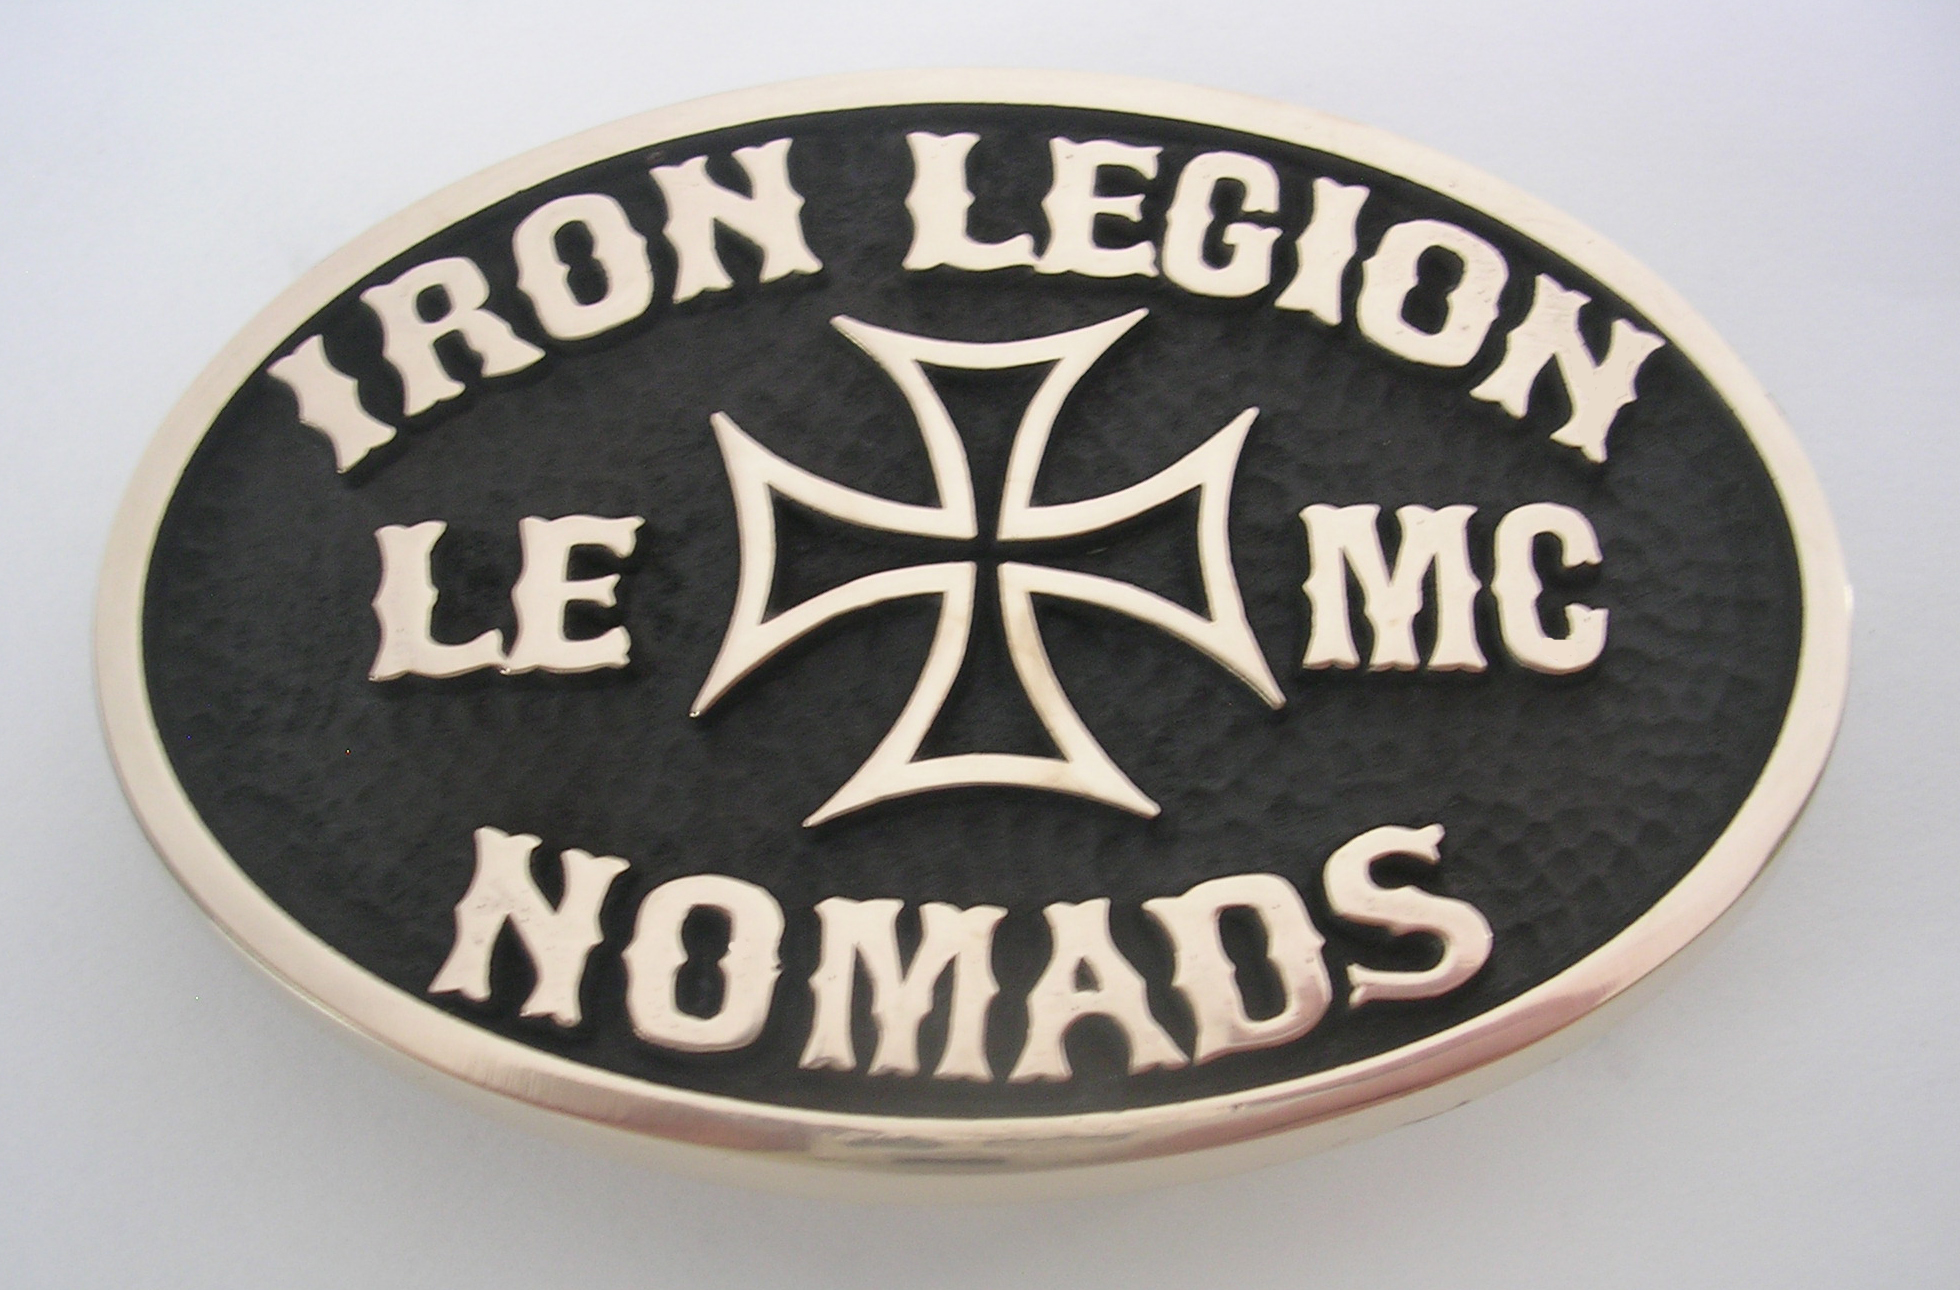 Iron Legion Nomads MC Buckle